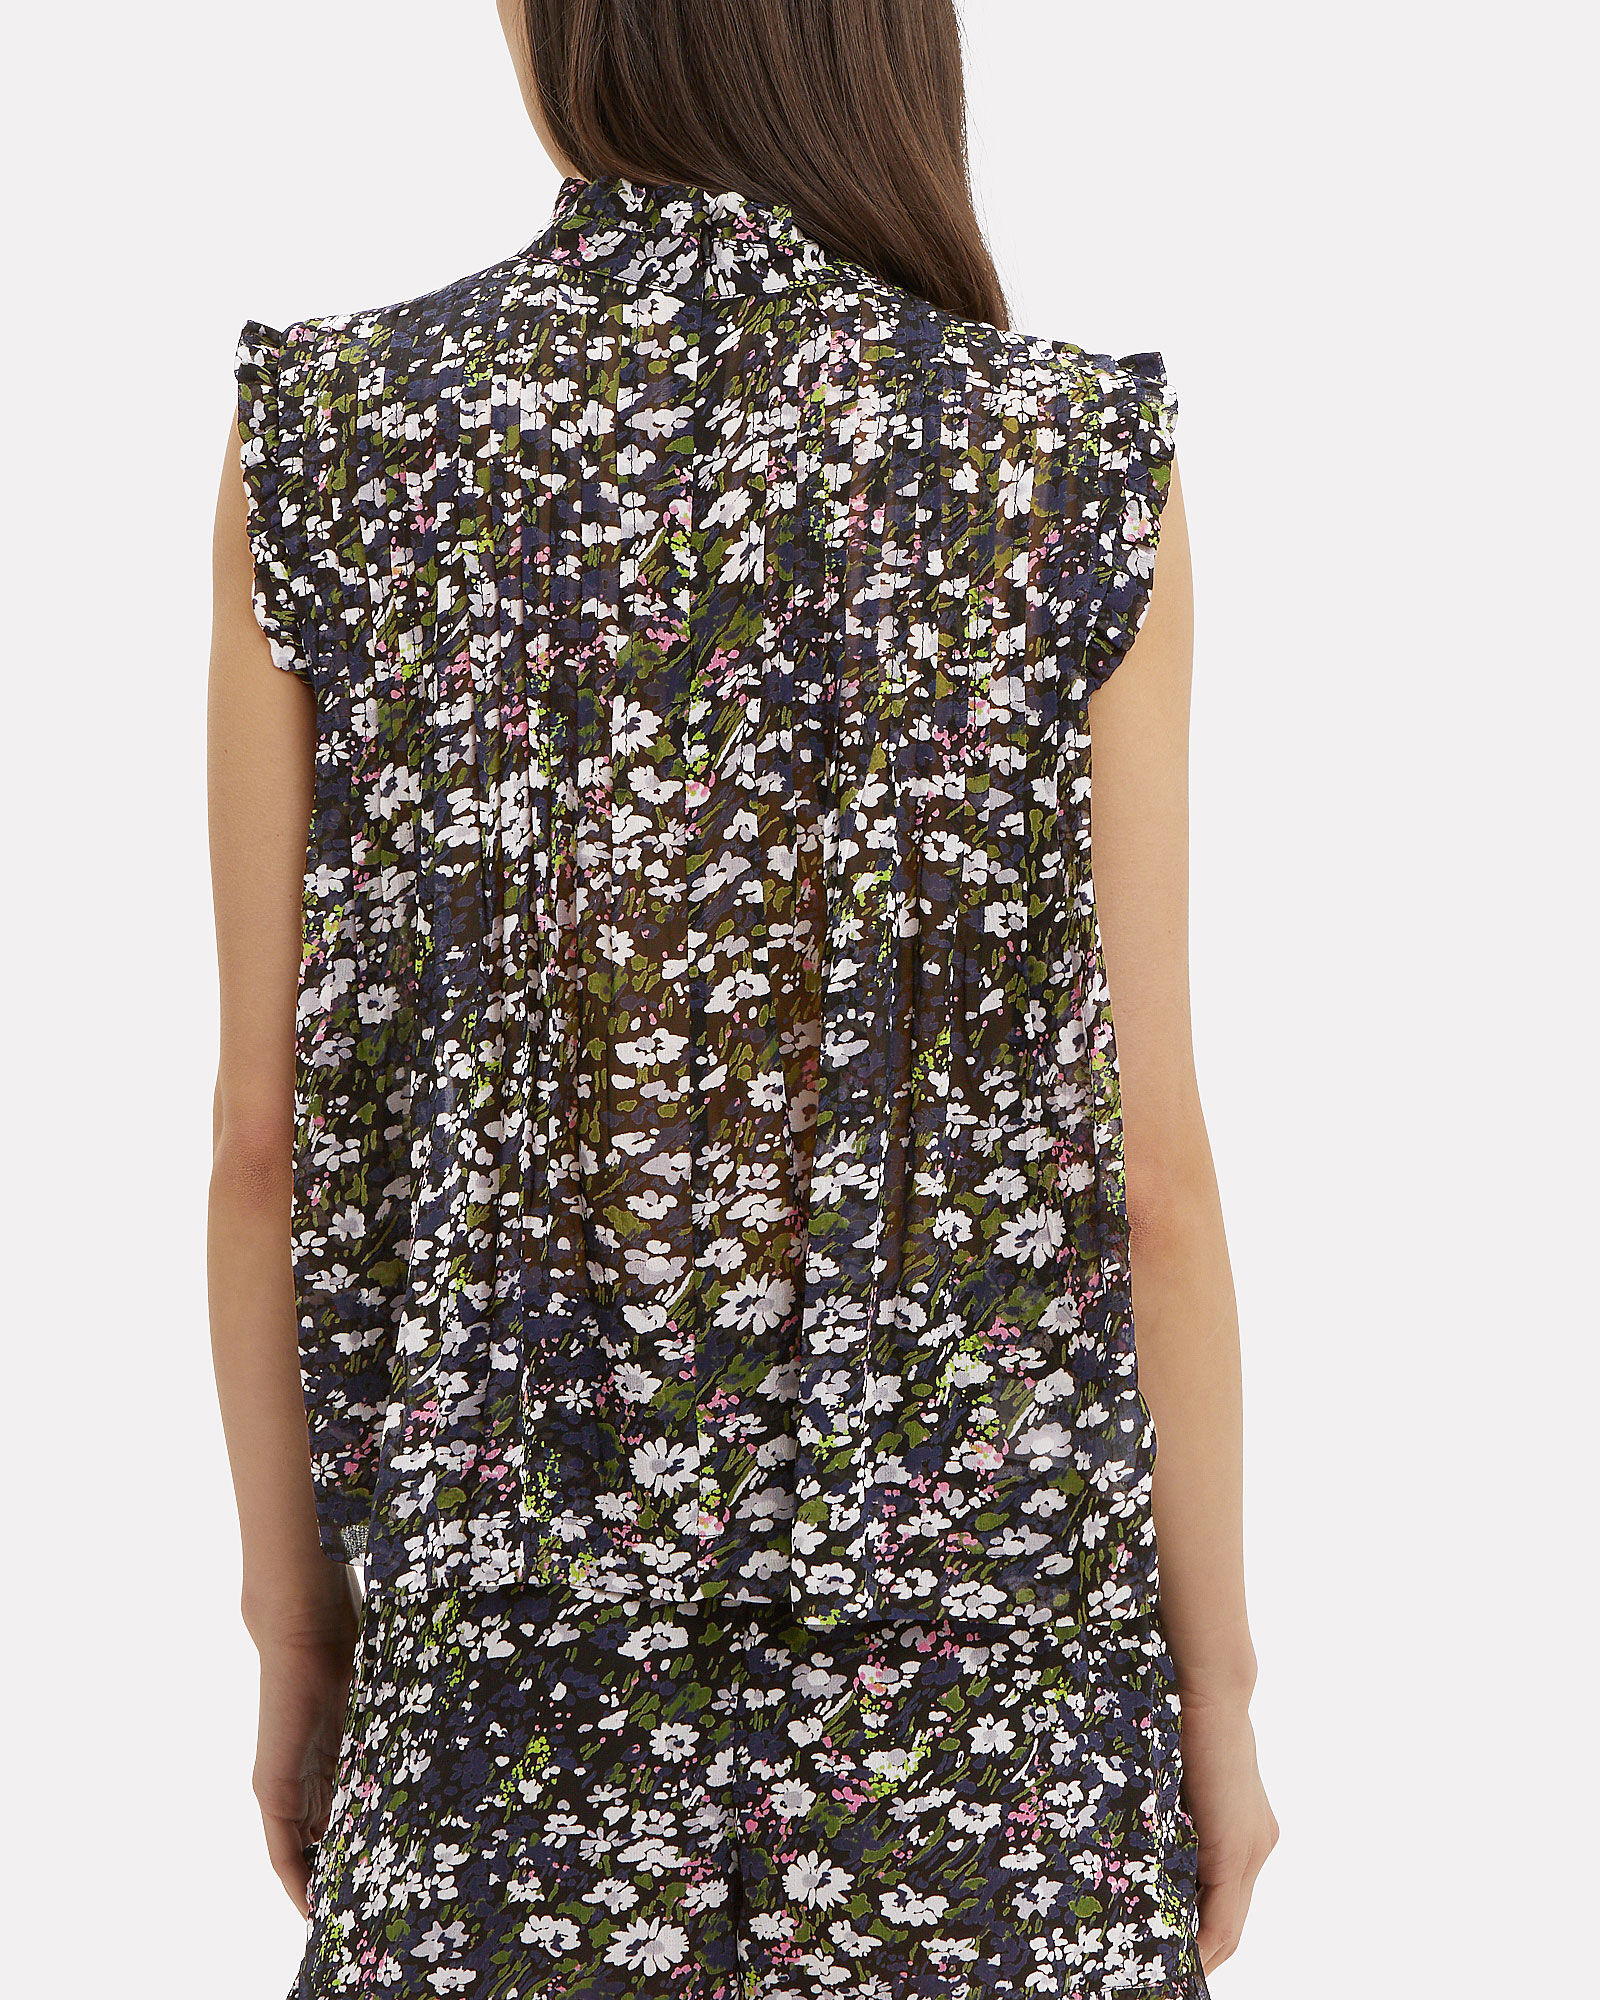 Georgette Sleeveless Floral Blouse, BLACK, hi-res